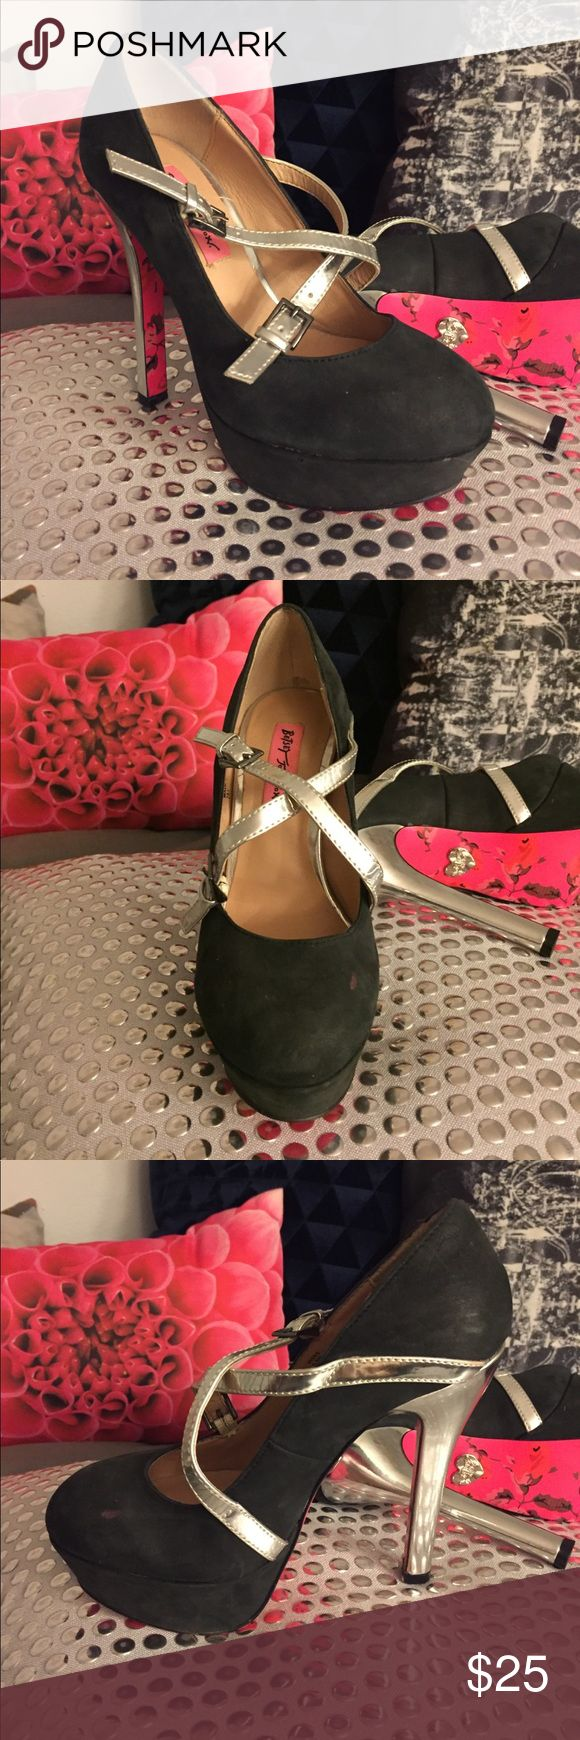 Betsey Johnson Black Mary Jane Heel Black leather Mary Jane heel. Black and silver detail. Cute pink pattern bottom. Worn. Size 5.5 fits true to size. Betsey Johnson Shoes Heels